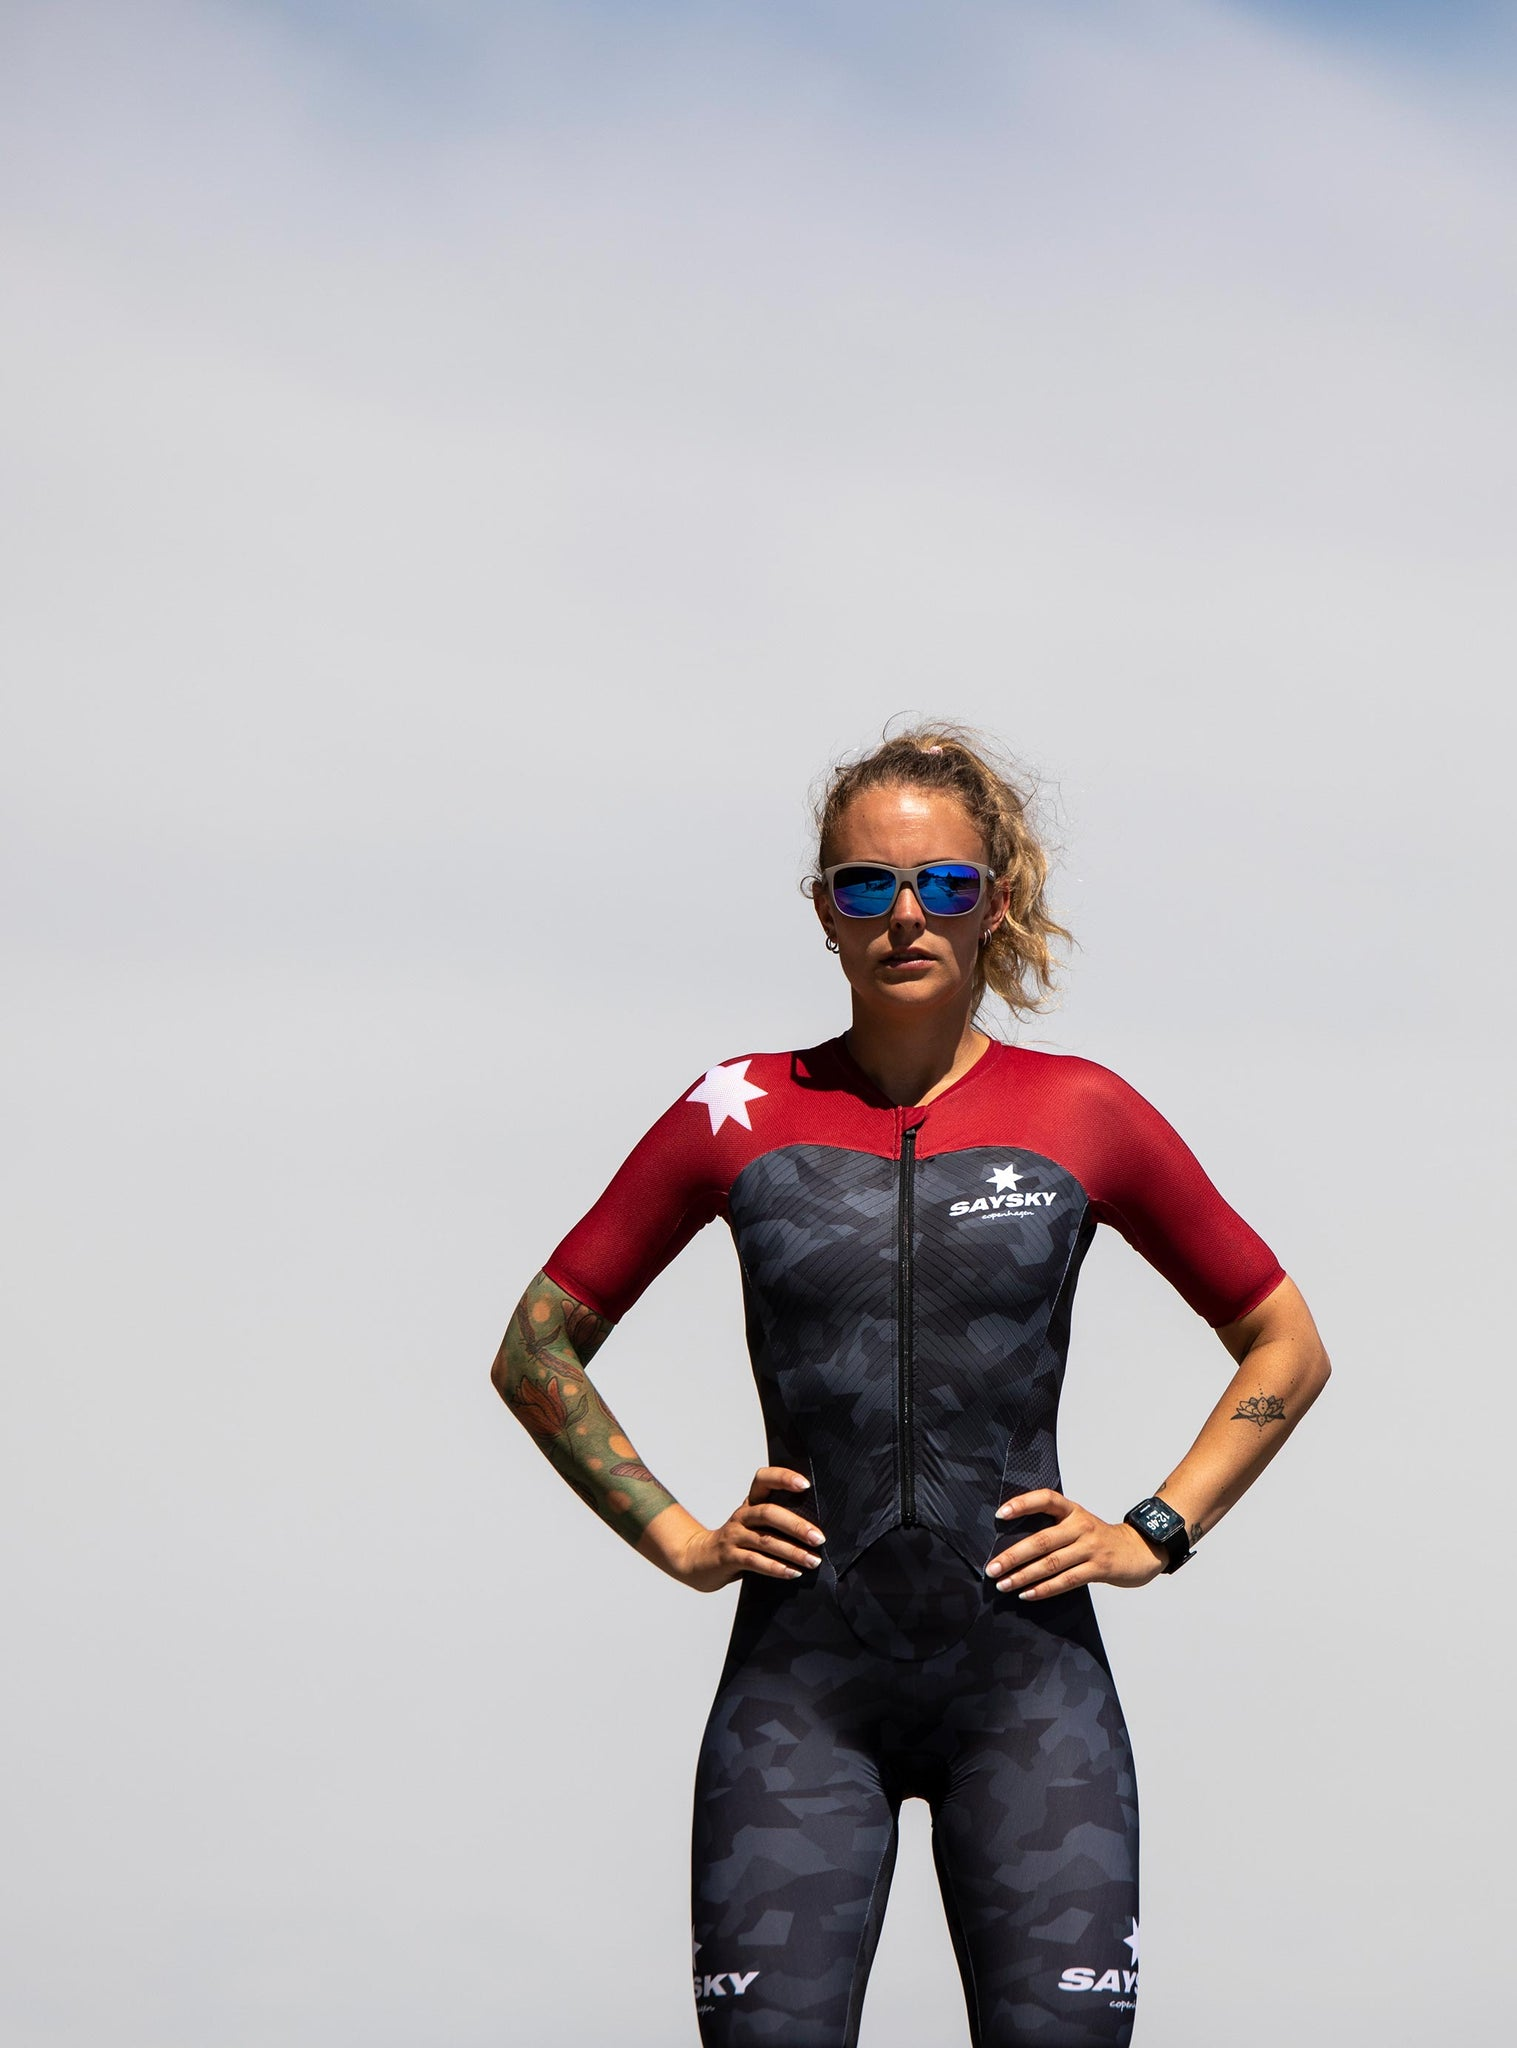 SAYSKY Triathlon Aero Suit 3.0